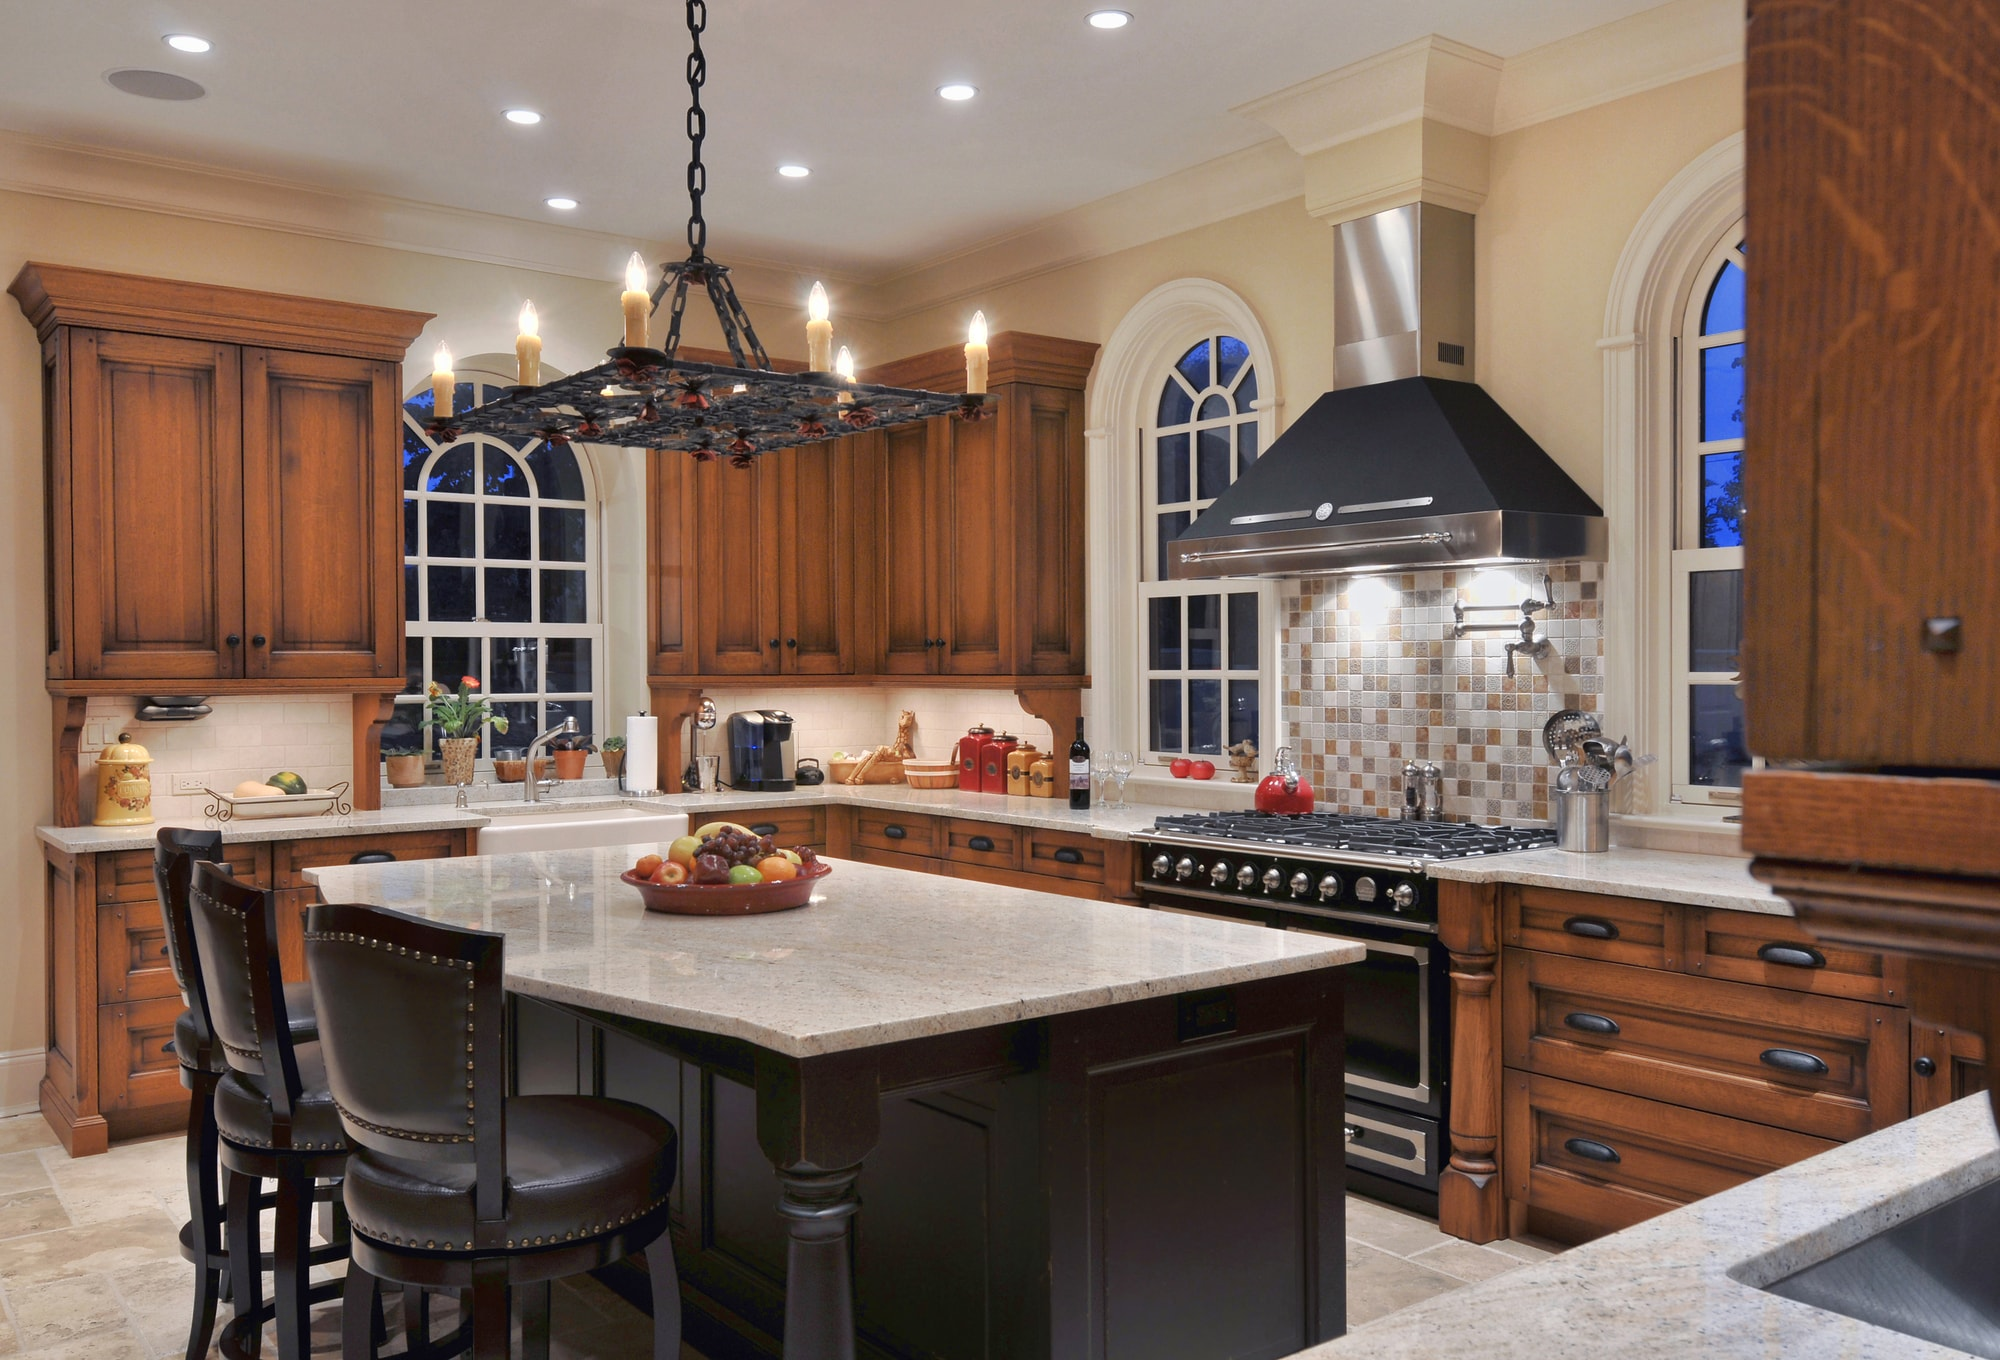 Traditional style kitchen with island in the center